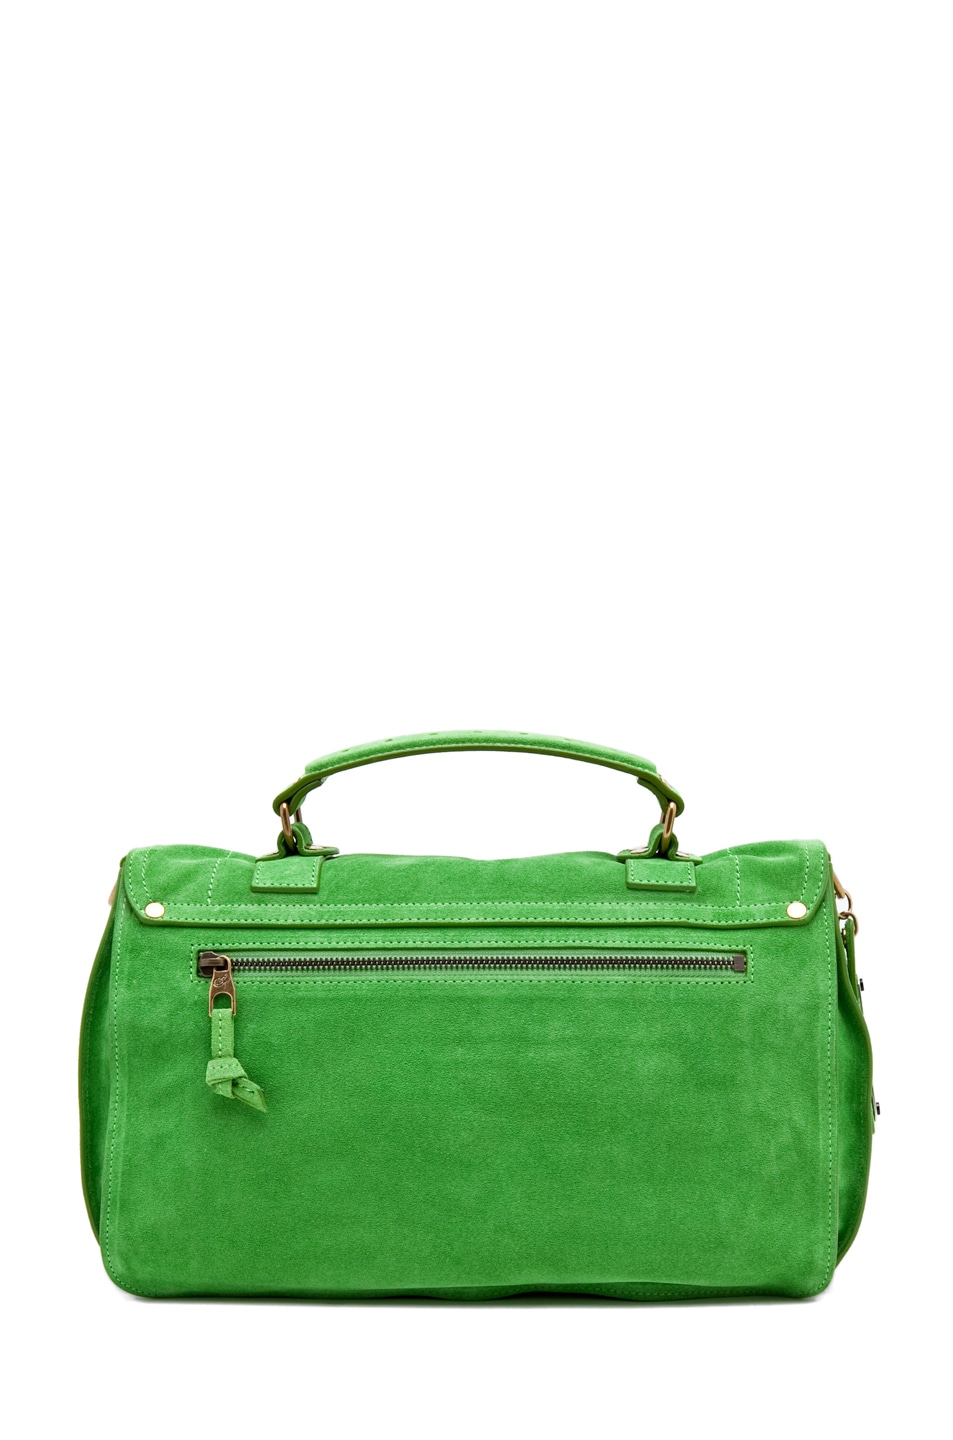 Image 2 of Proenza Schouler PS1 Medium Suede in Tropical Green